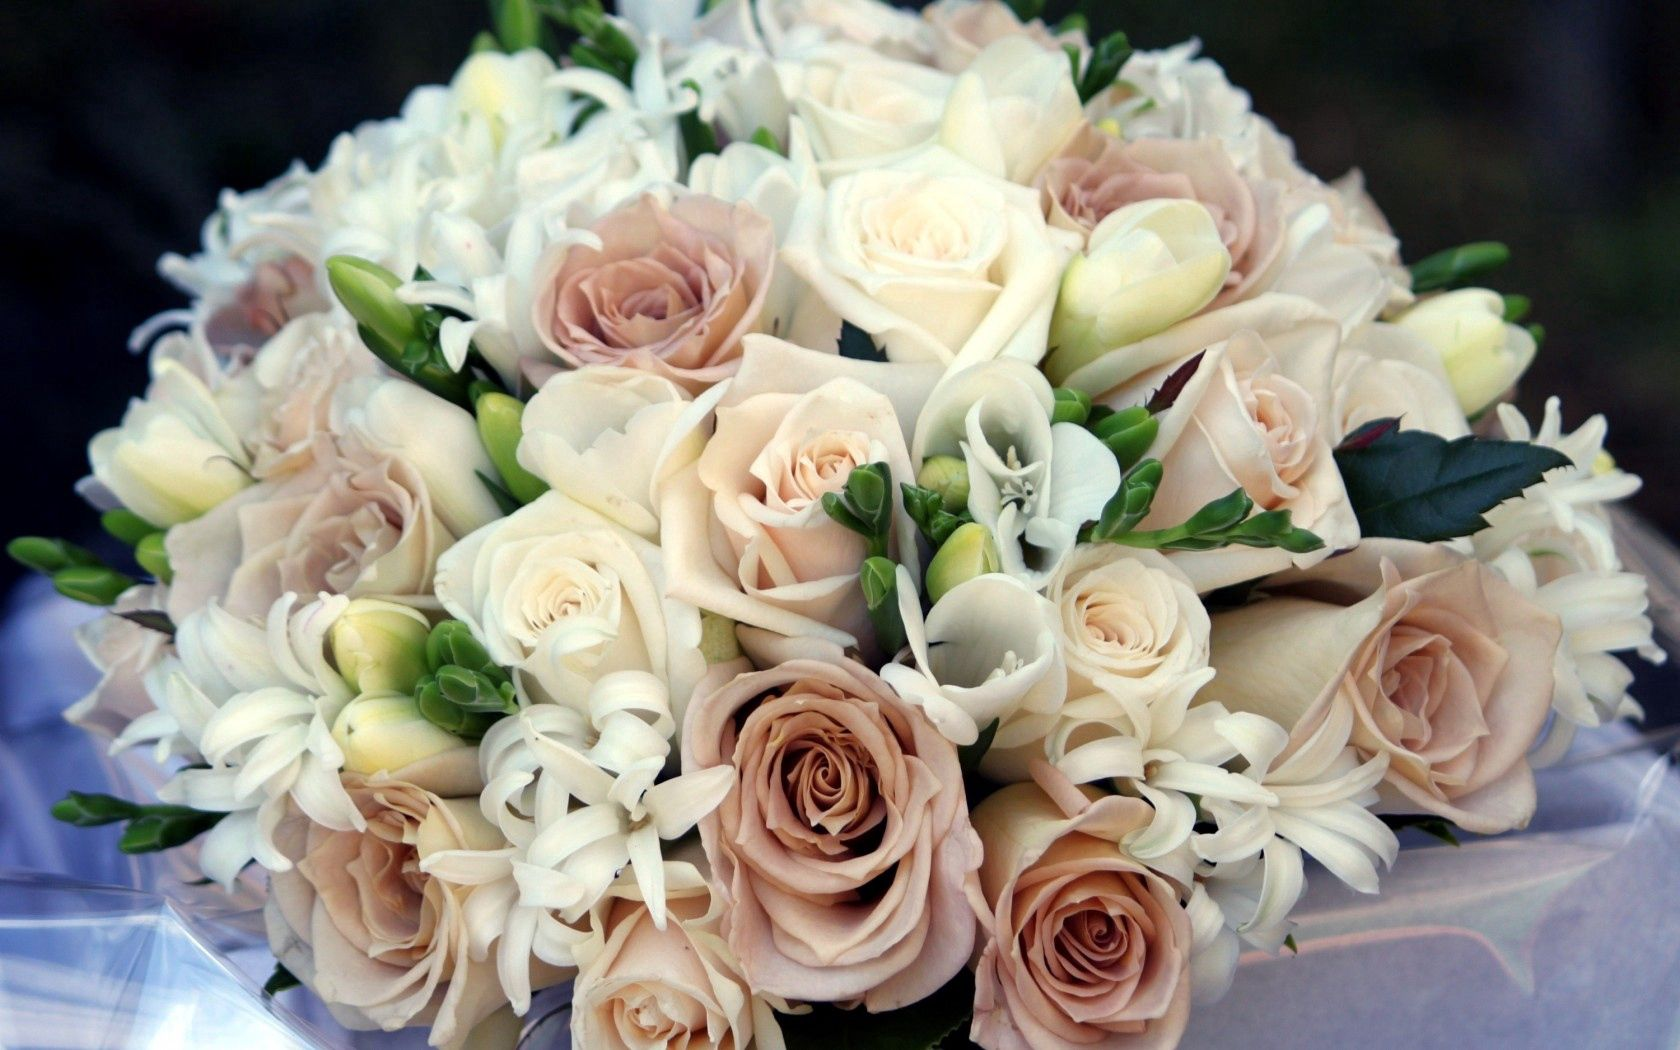 60485 download wallpaper Flowers, Roses, Bouquet, Composition, Freesia, Freesias screensavers and pictures for free